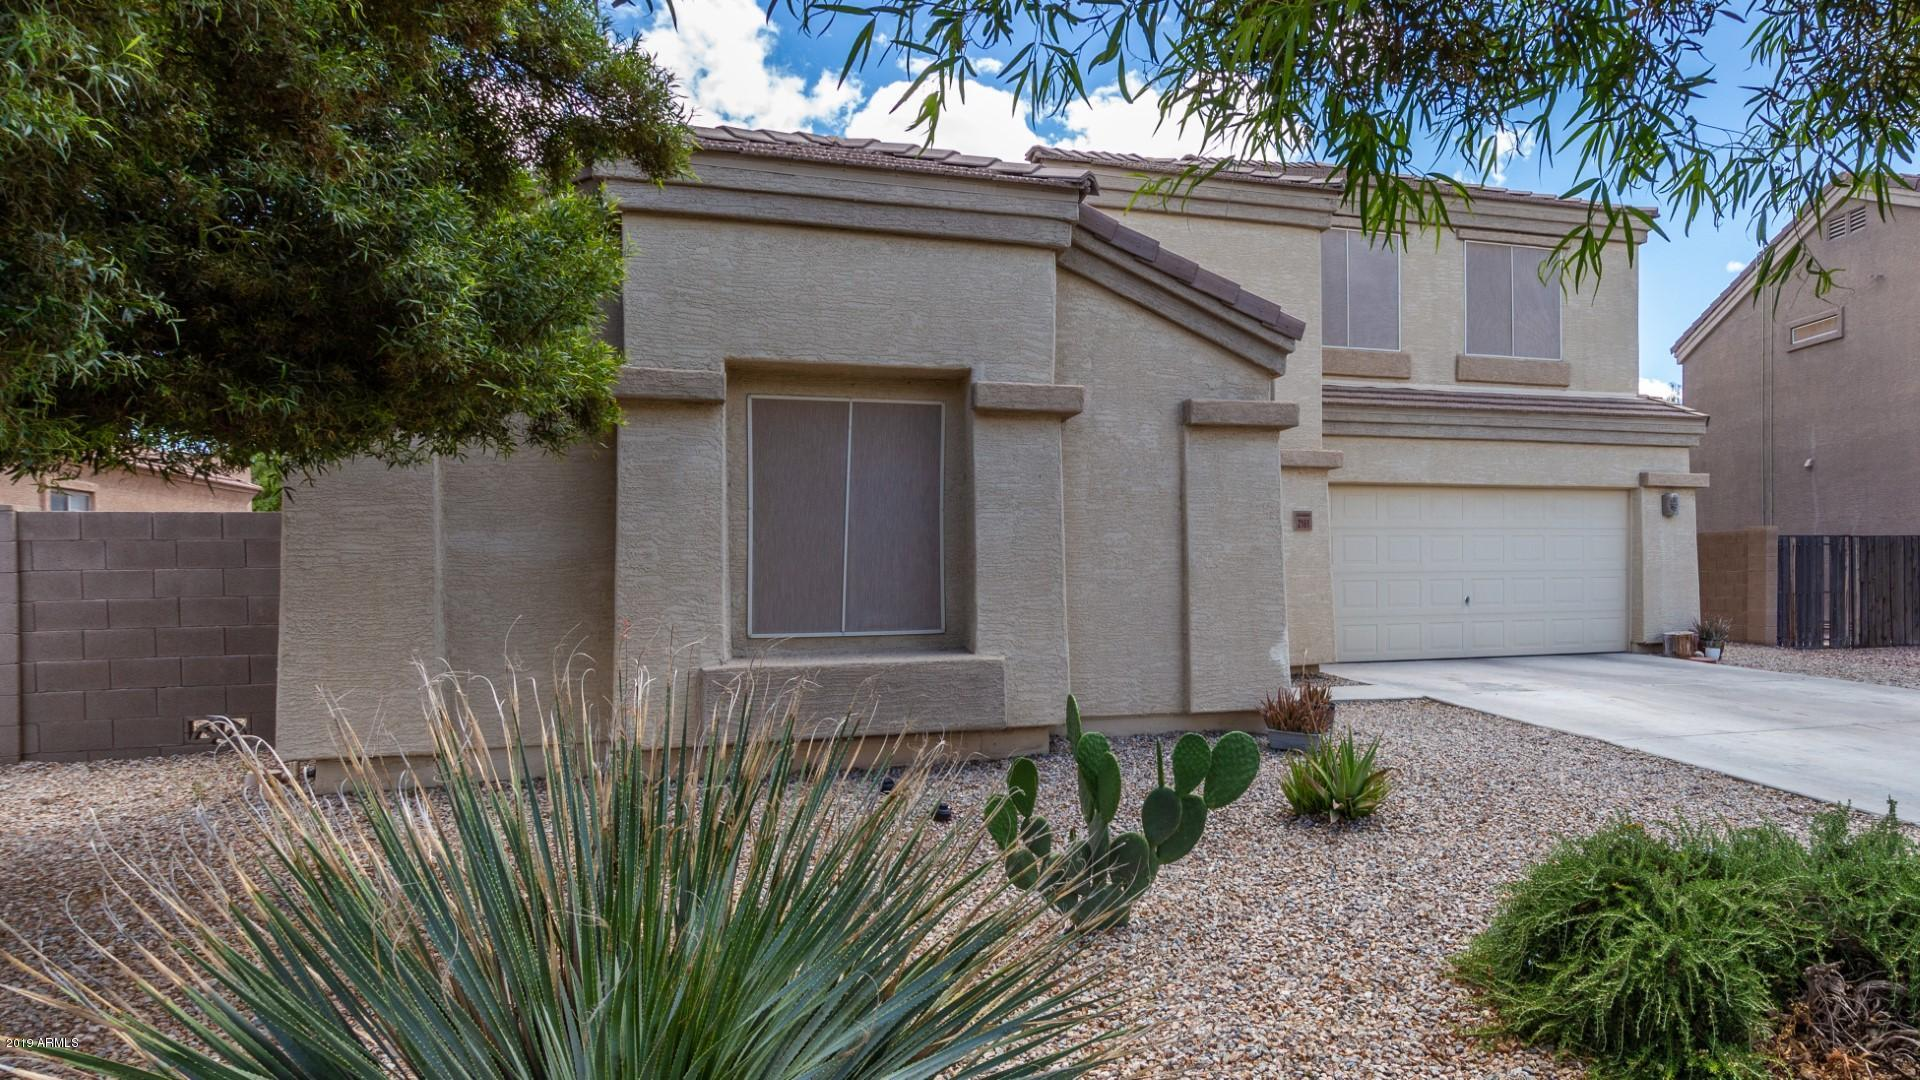 MLS 5930722 2161 W CAMERON Boulevard, Coolidge, AZ 85128 Coolidge AZ Heartland Ranch